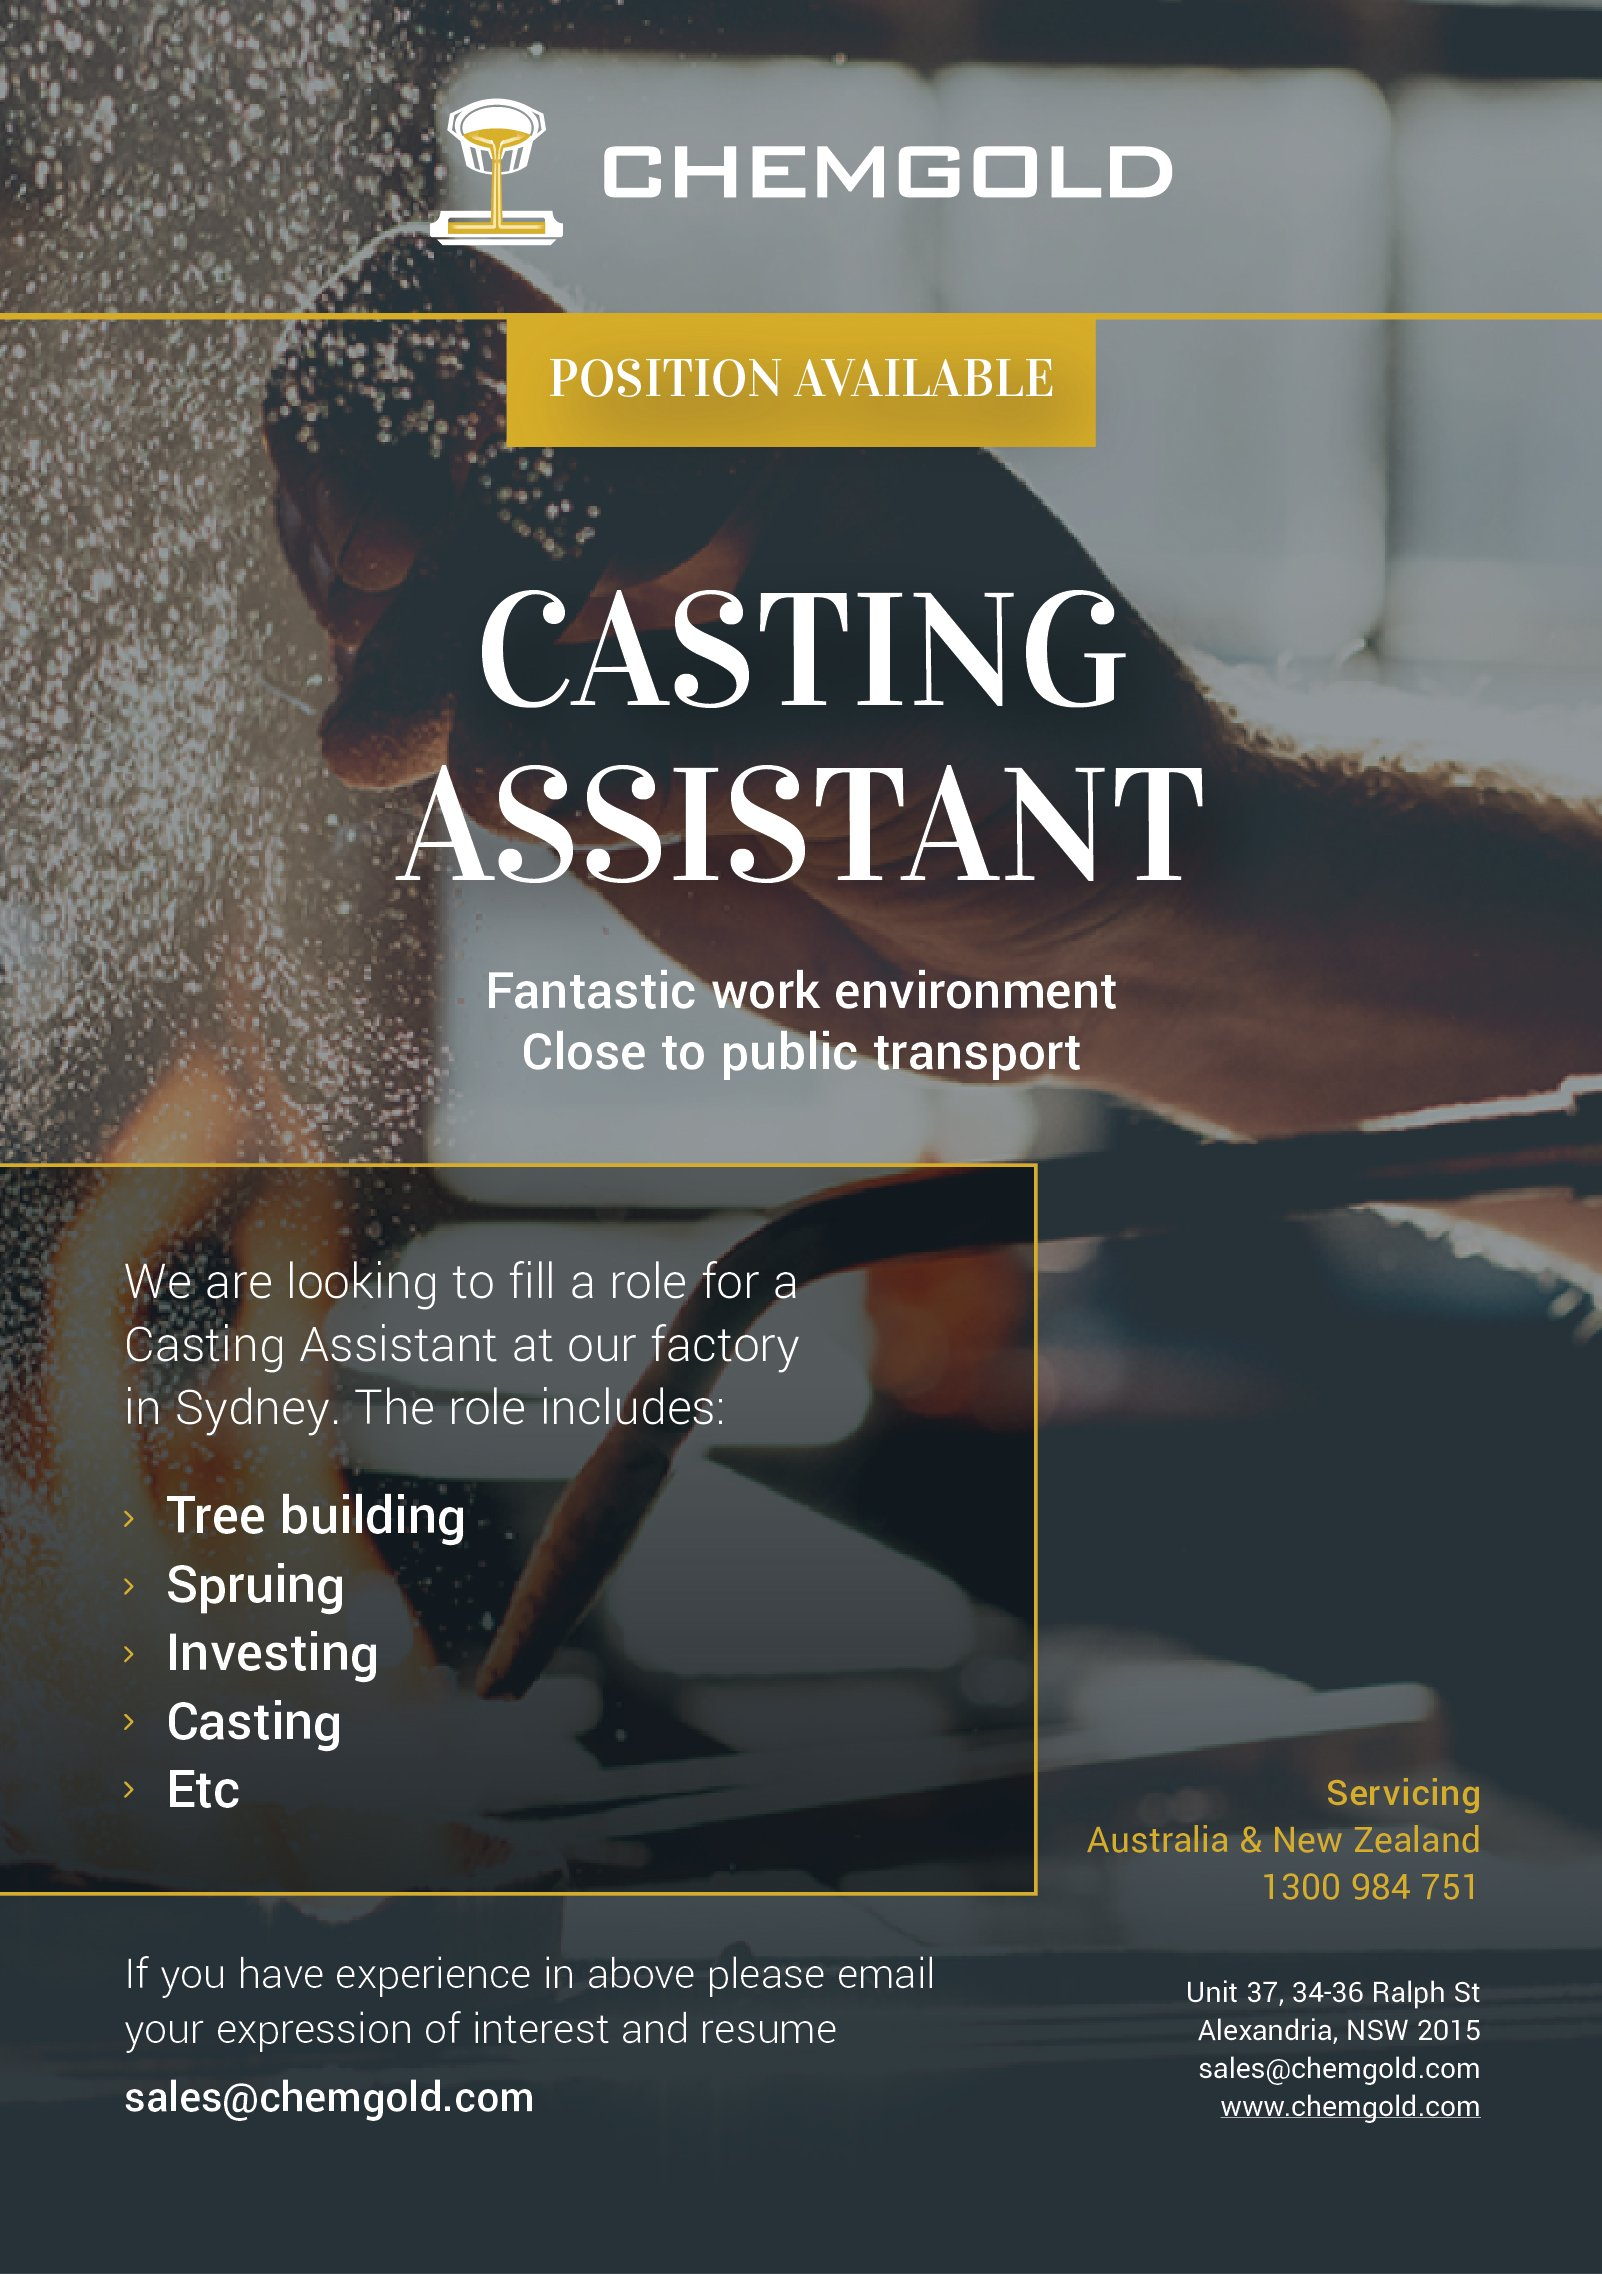 Chemgold Position Available - Casting Assistant